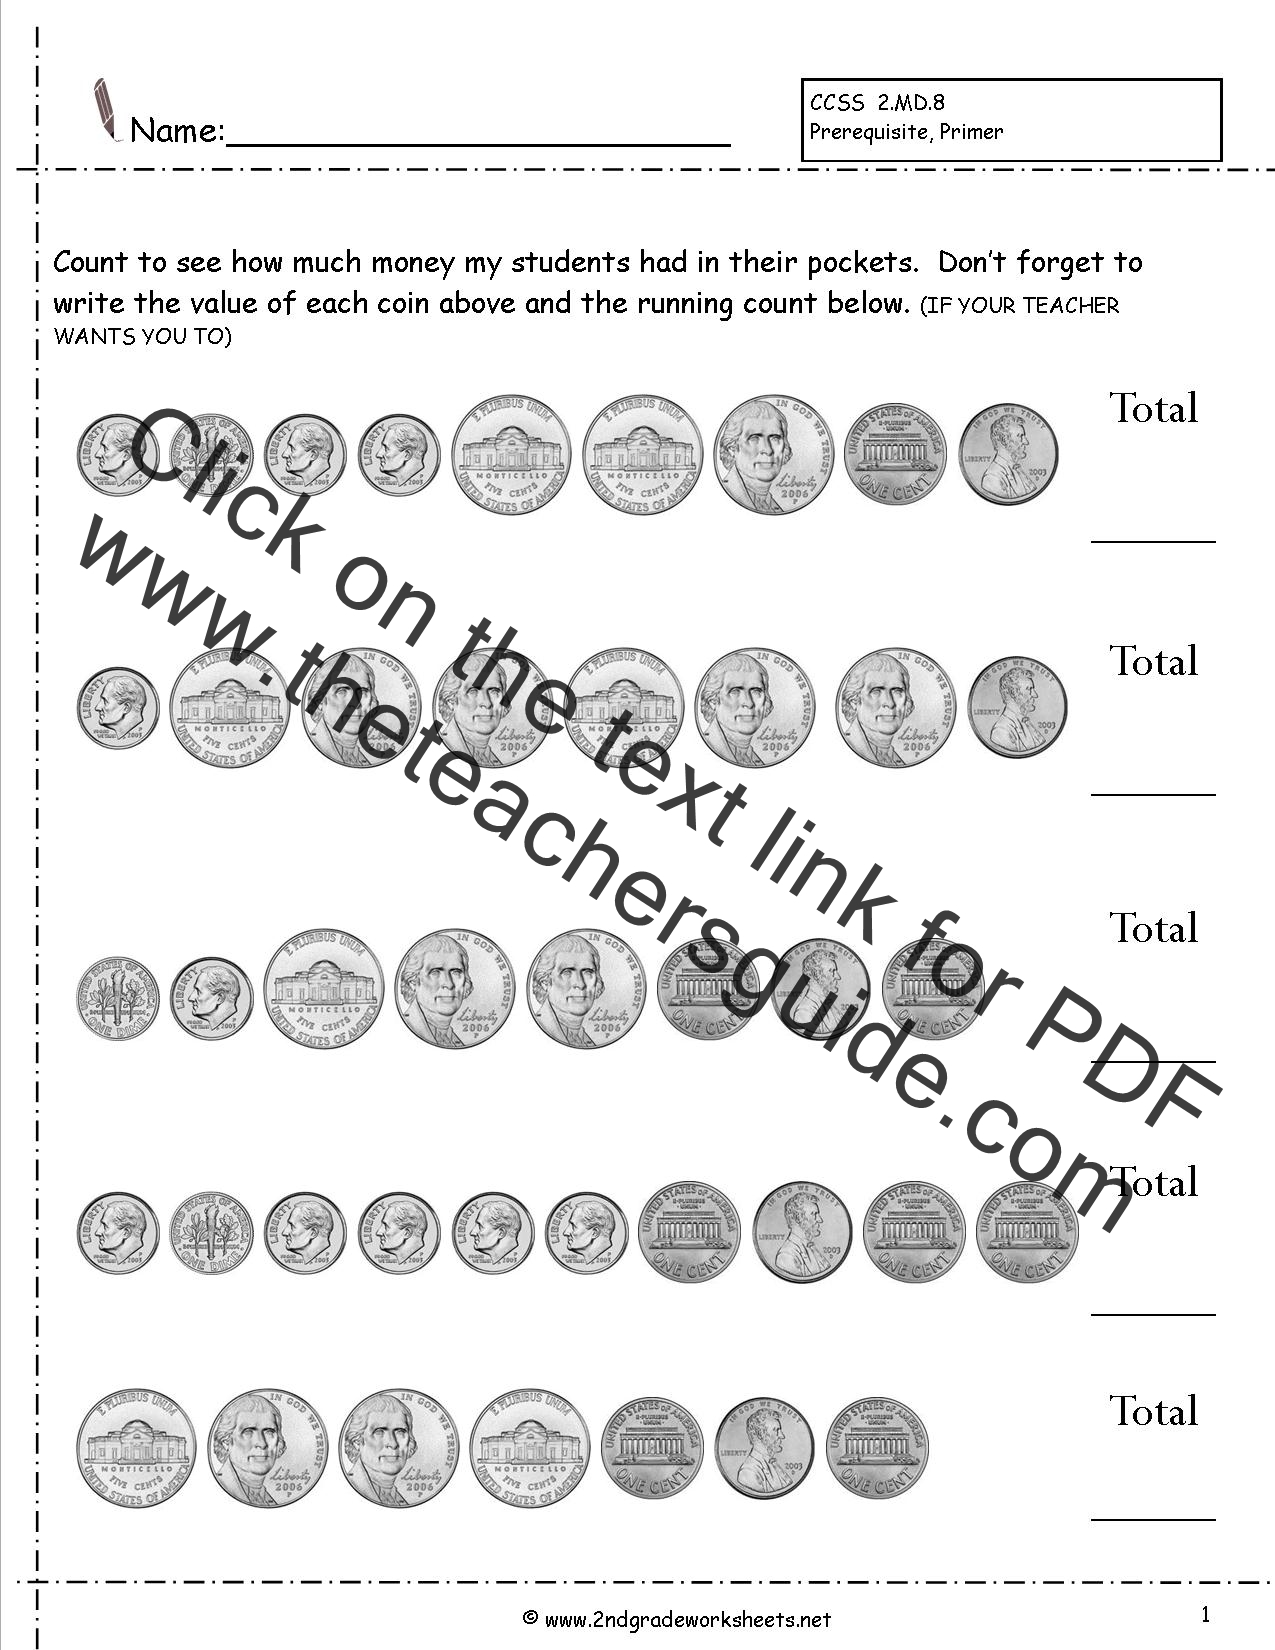 Printable Money Worksheets 2nd Grade That Are Playful